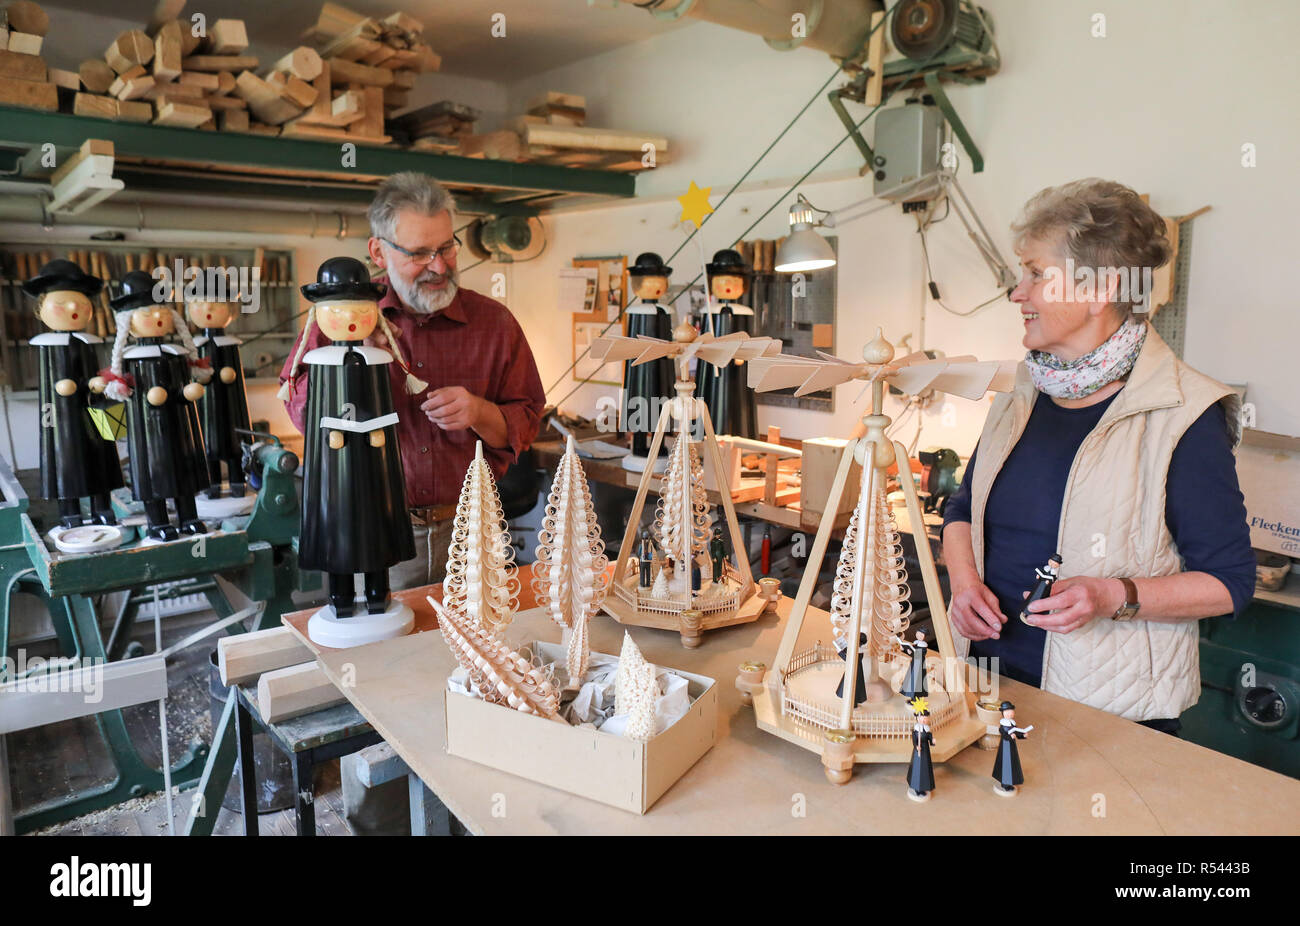 Einsiedel, Germany. 08th Nov, 2018. Barbara and Steffen Göthel are working on elephant singer figures and pyramids in the Erzgebirge arts and crafts enterprise Werner Glöß in Einsiedel. The small family business has been producing such decorative Christmas decorations for over 60 years. Carving and the production of wooden toys are still an important branch of the economy in the Erzgebirge. The spectrum ranges from such two-man family businesses to large medium-sized companies with several hundred employees. Credit: Jan Woitas/dpa-Zentralbild/dpa/Alamy Live News - Stock Image